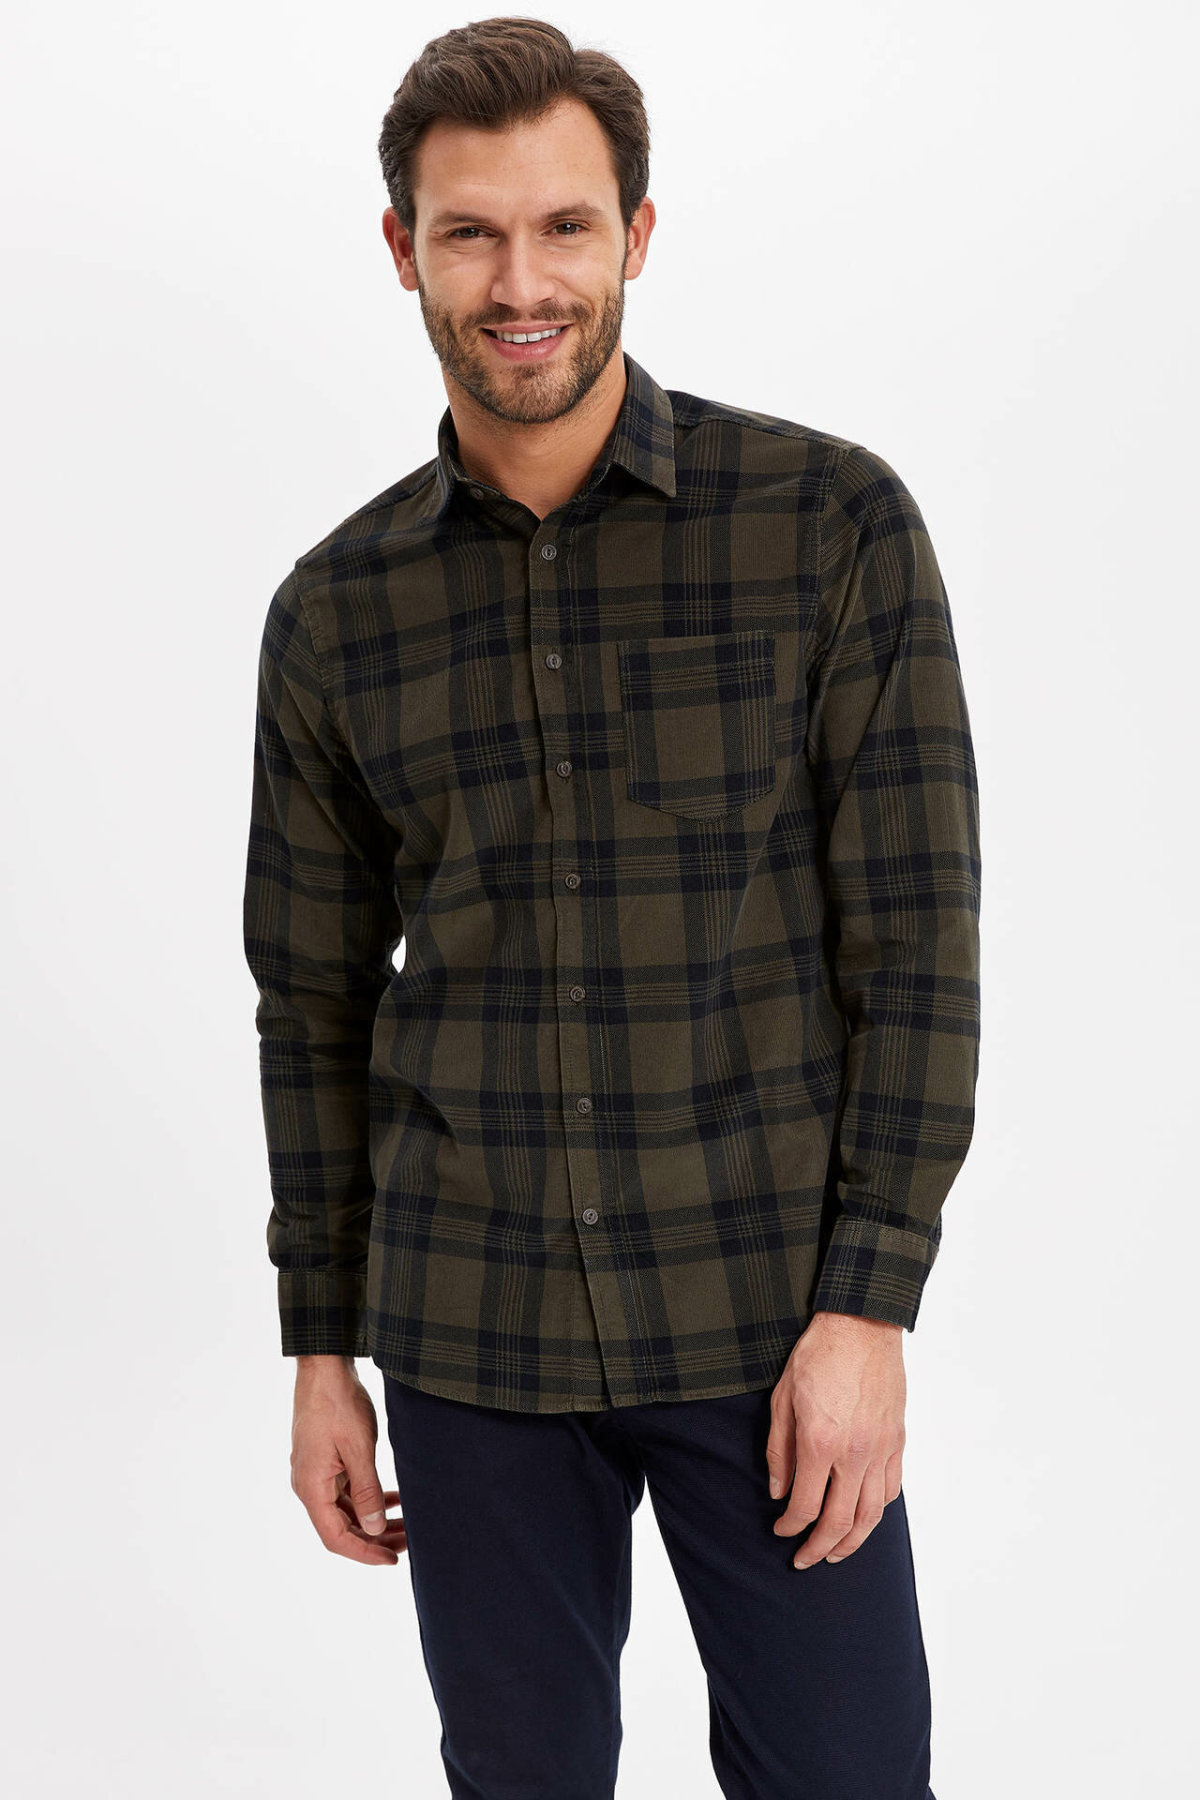 DeFacto Men Autumn Fashion Black Green Plaid Cotton Shirt Long Sleeve Pocket Decors Casual Male Shirt-J1156AZ18WN-J1156AZ18WN